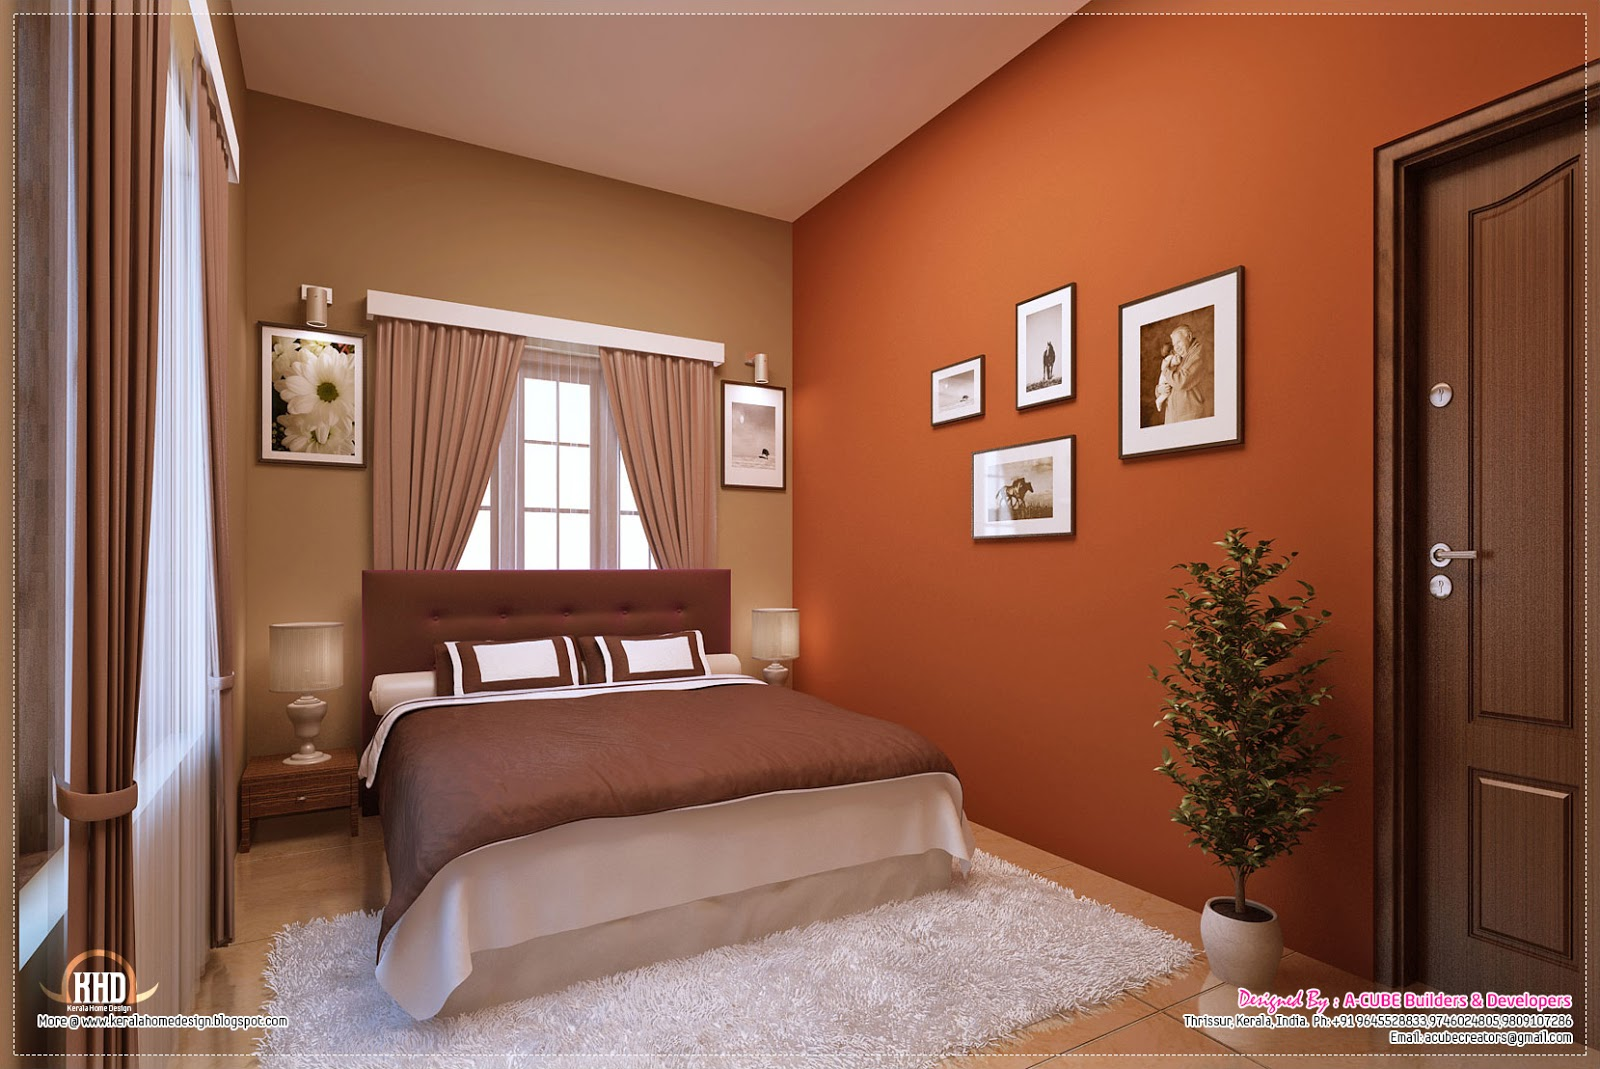 Awesome interior decoration ideas home kerala plans for Awesome interior design